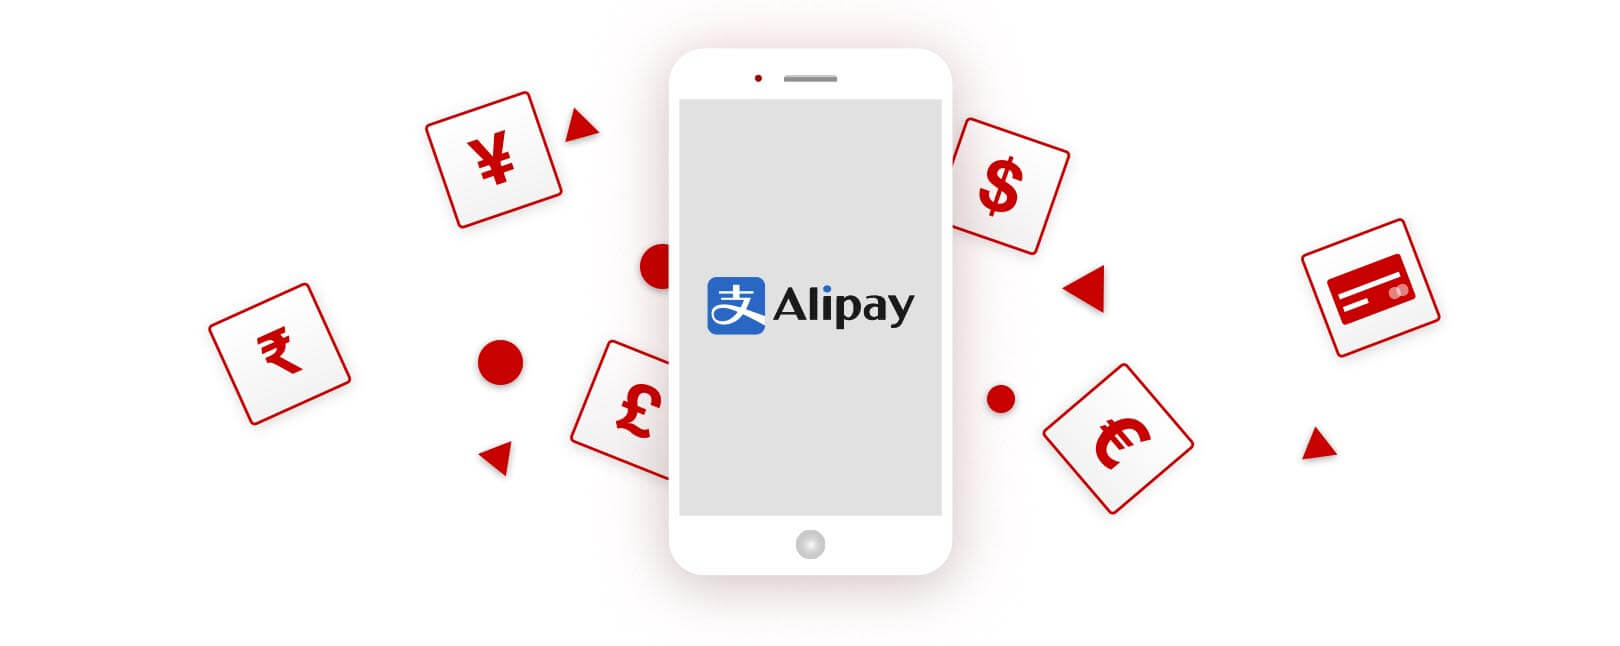 Alipay Payments: The Key to $3 Trillion in Consumer Spending